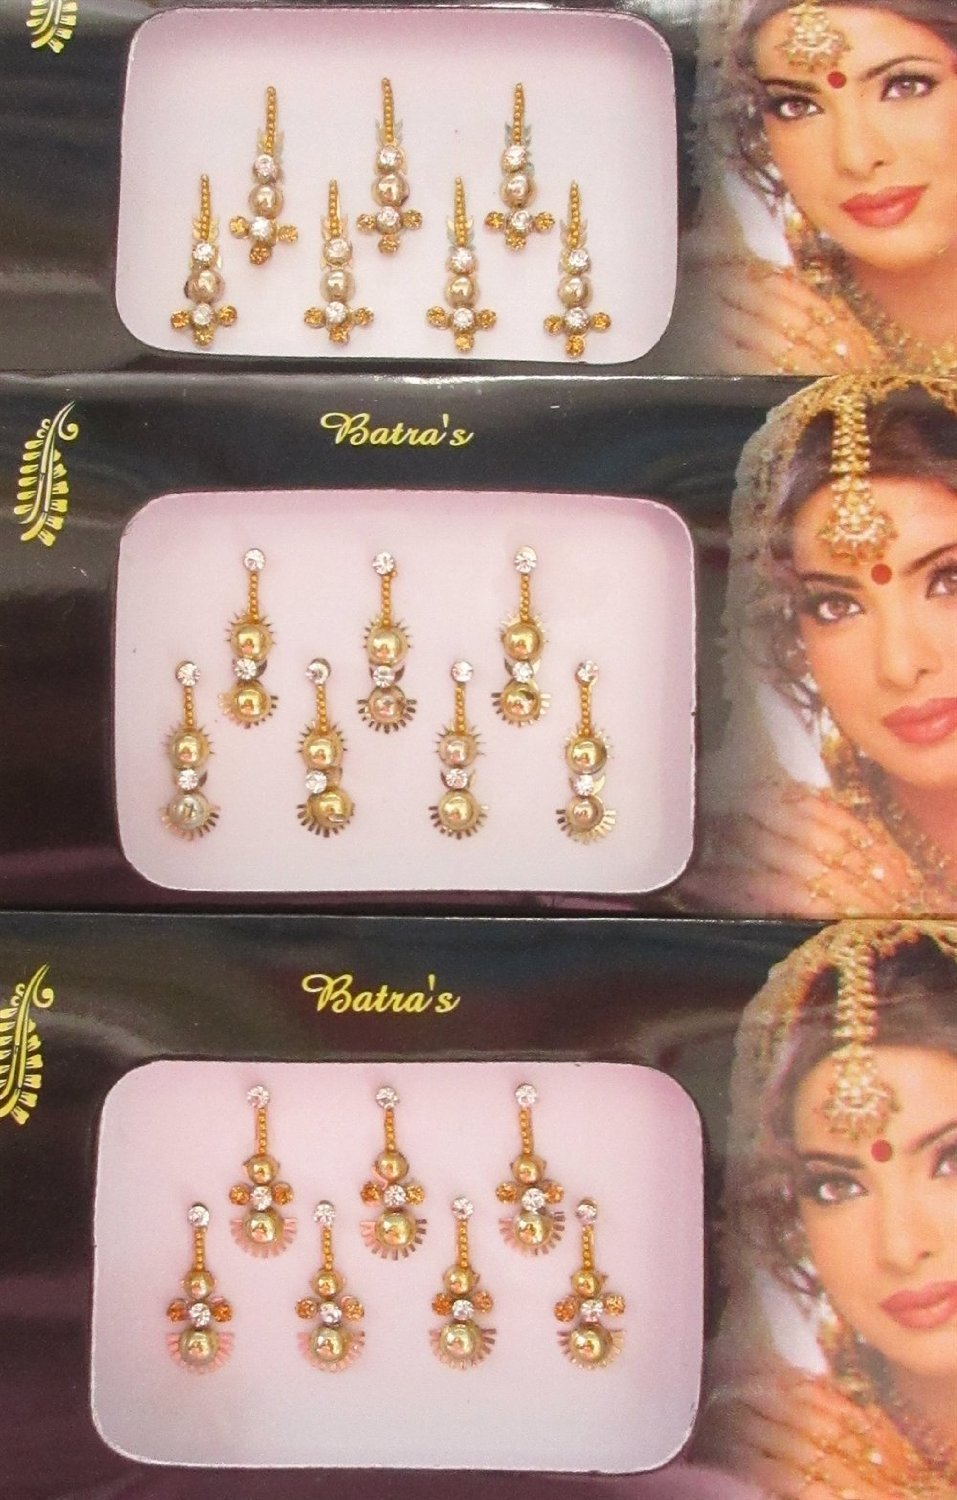 14 Bindis 2 Packs Of Gold Long Face Jewels Bollywood Bindis/Indian India Bindis/Bindi Sticker/Bindi Jewels/Face Jewels/Fancy Bindis Online/Golden bindi ultimate fab stuff